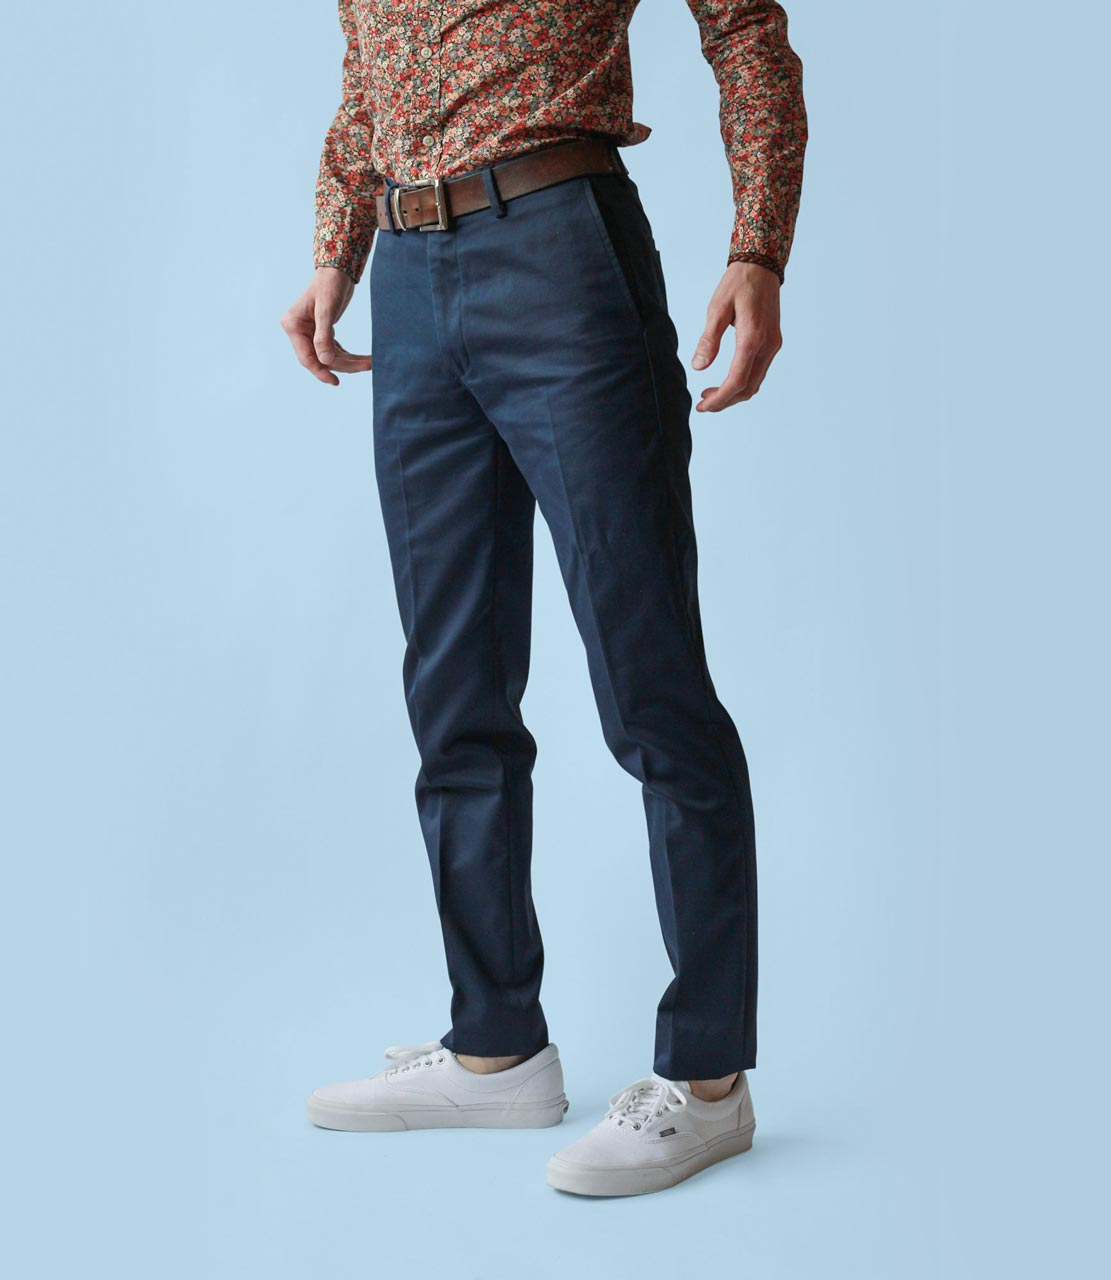 Tailored Dockers Pants / Khakis